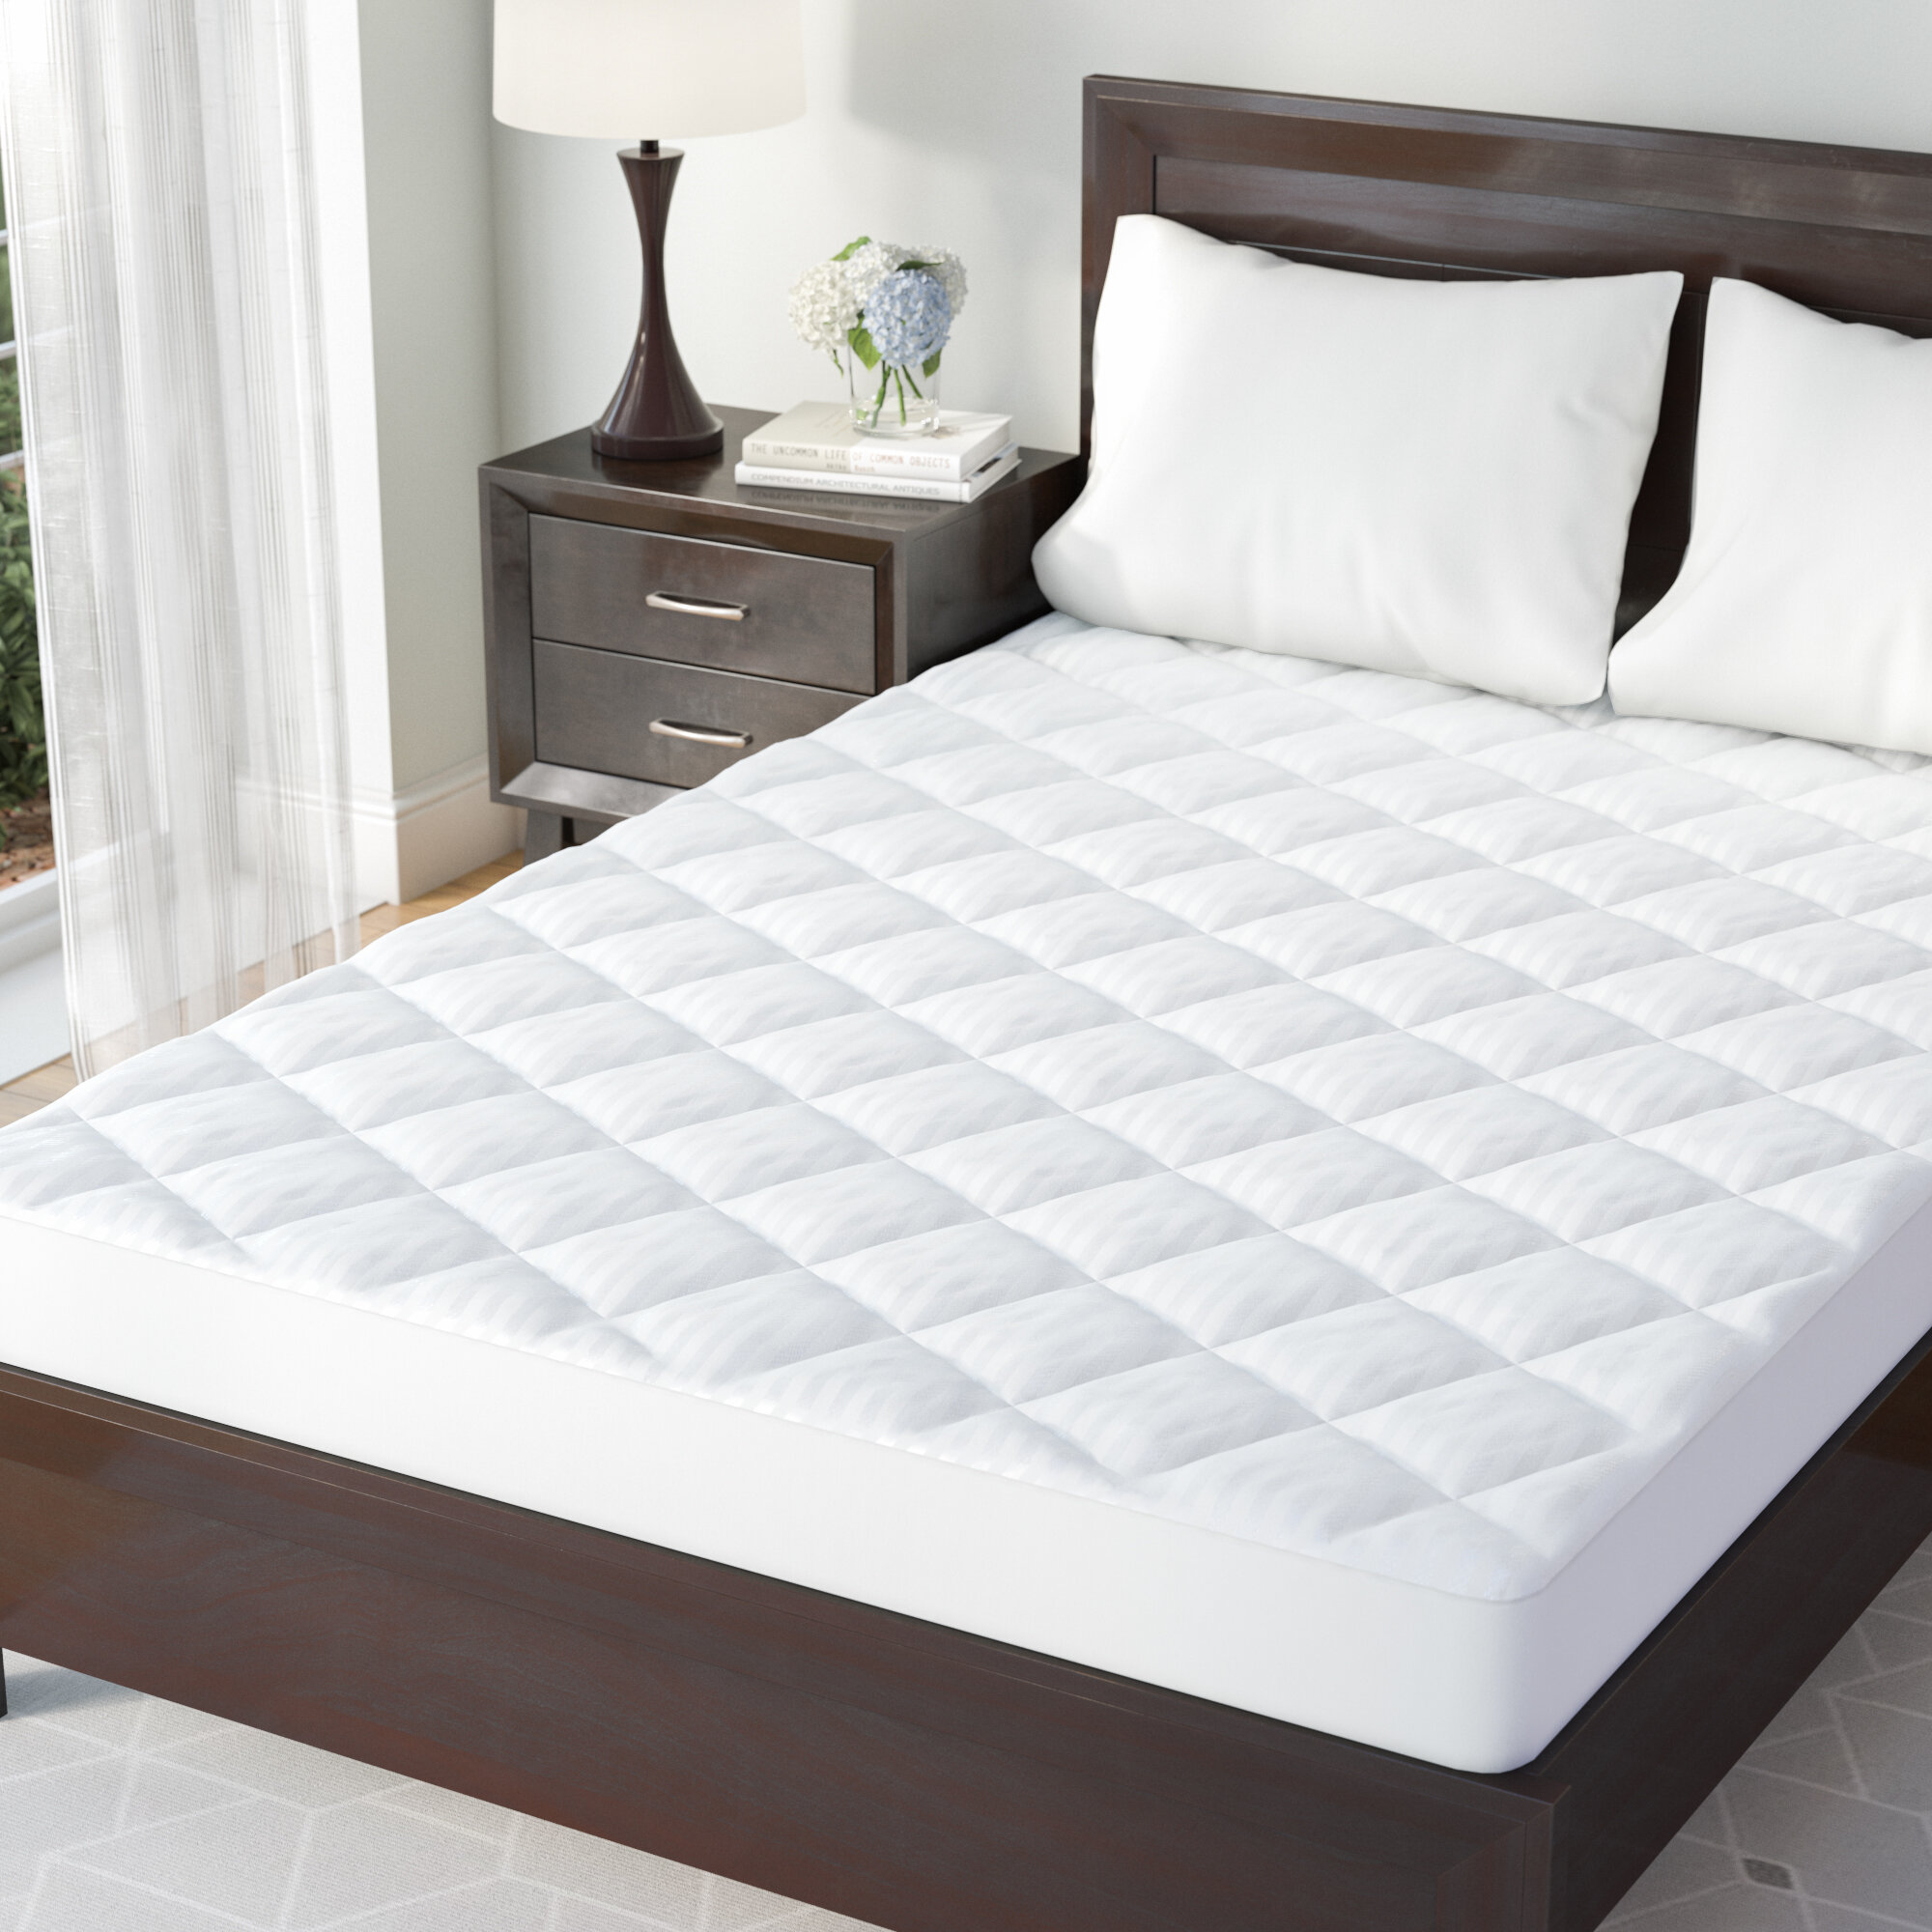 233 Thread Count ExceptionalSheets Quilted Deluxe Blended Feather and Down Bed//Mattress Topper Queen eLuxurySupply